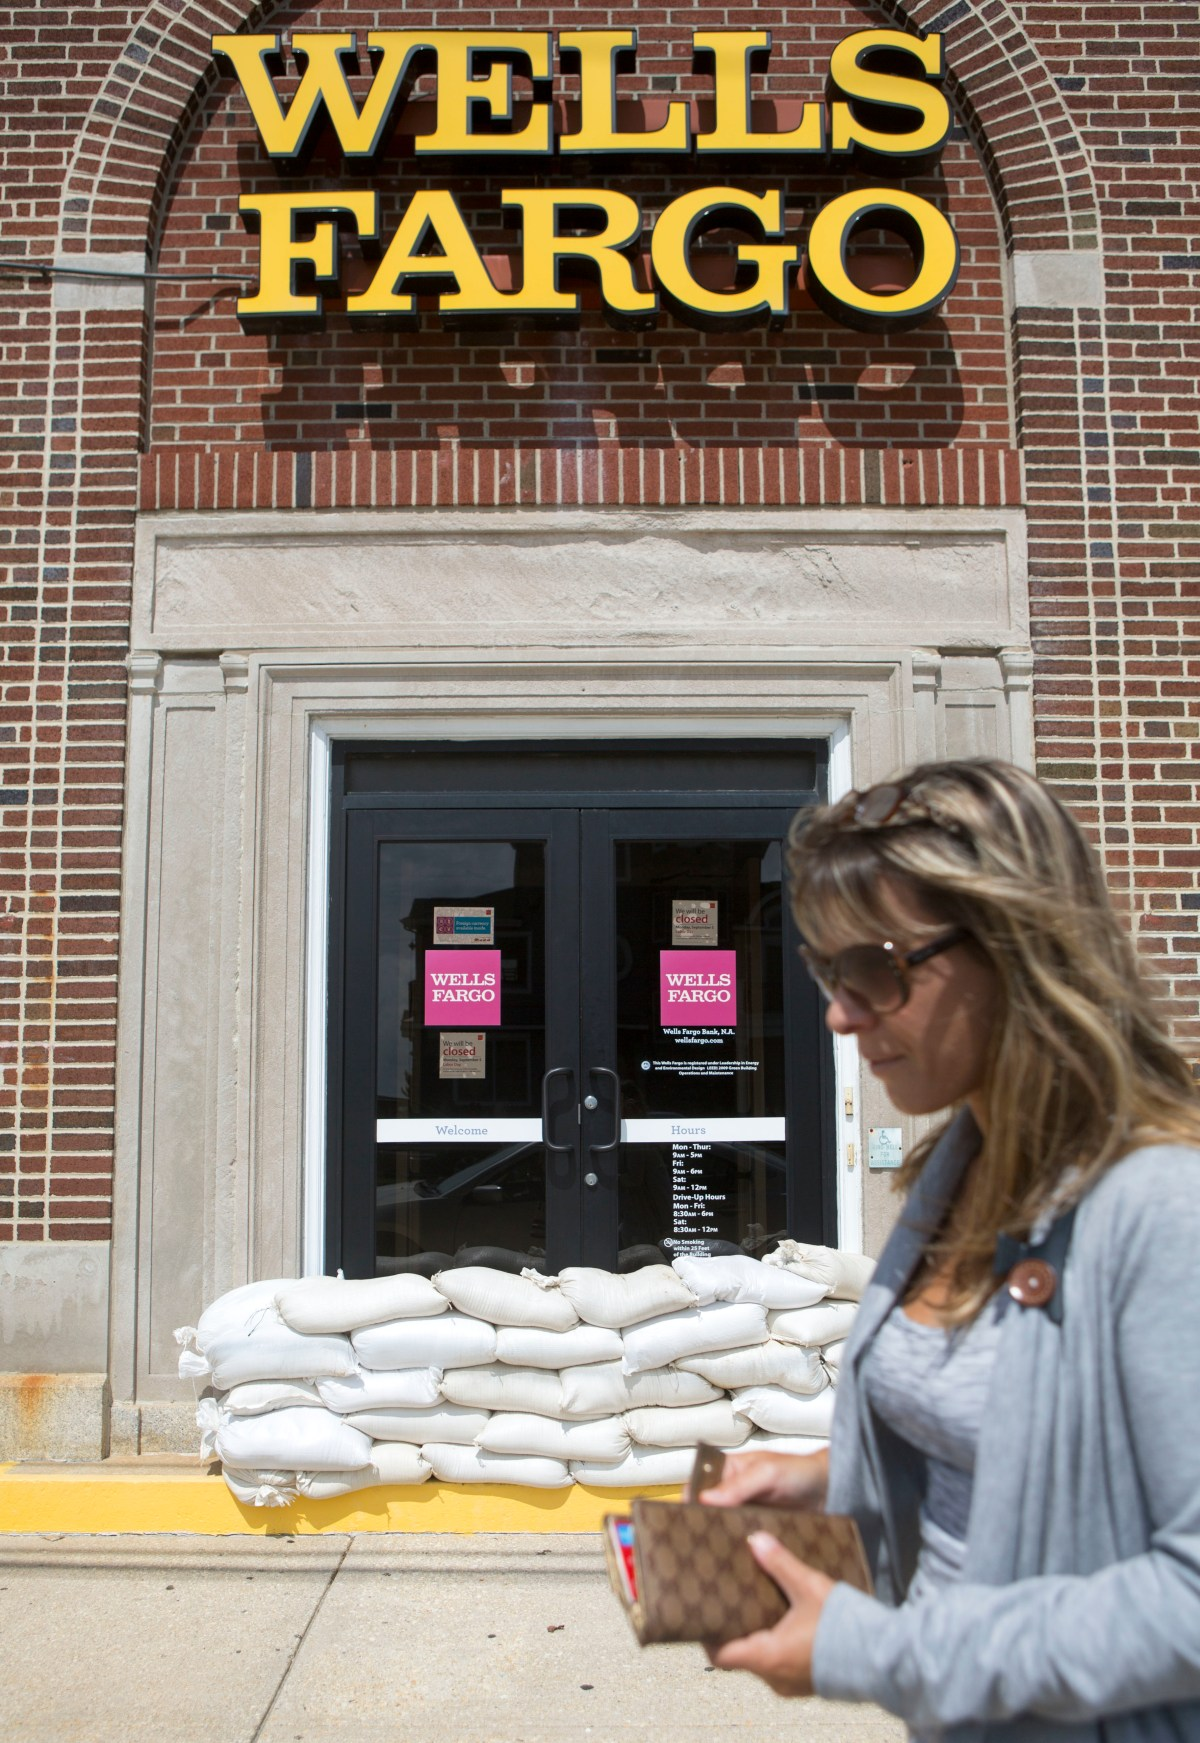 This Wells Fargo Bank Scam Is Insane and 5,300 People Were Just Fired For It | Inverse